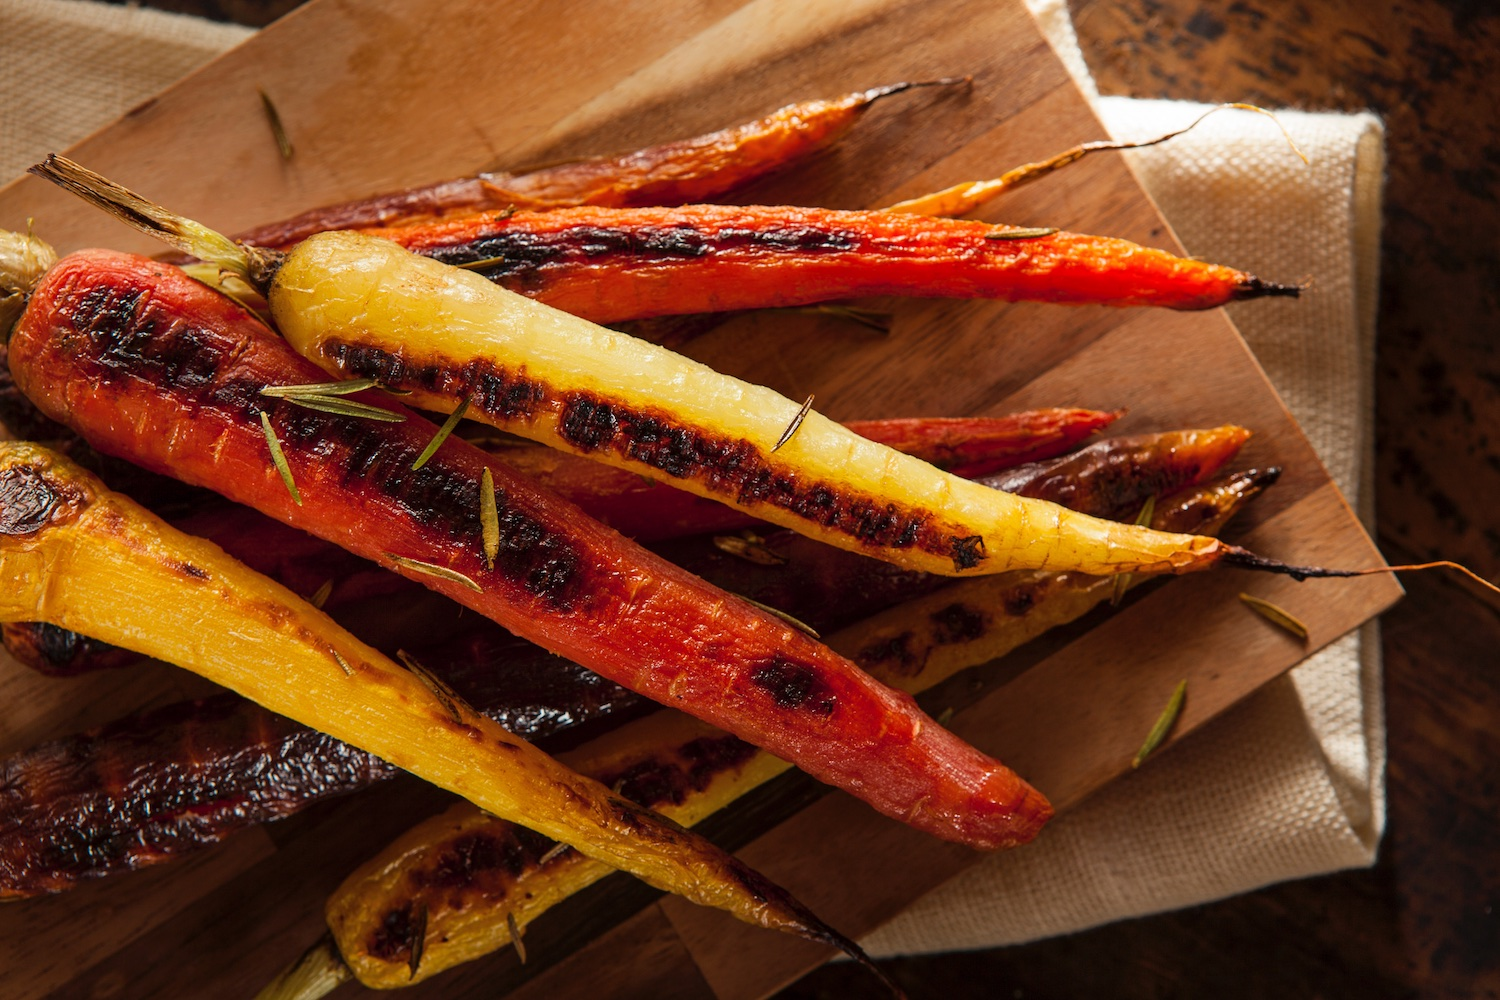 Grilled rainbow carrots with a basil vinaigrette